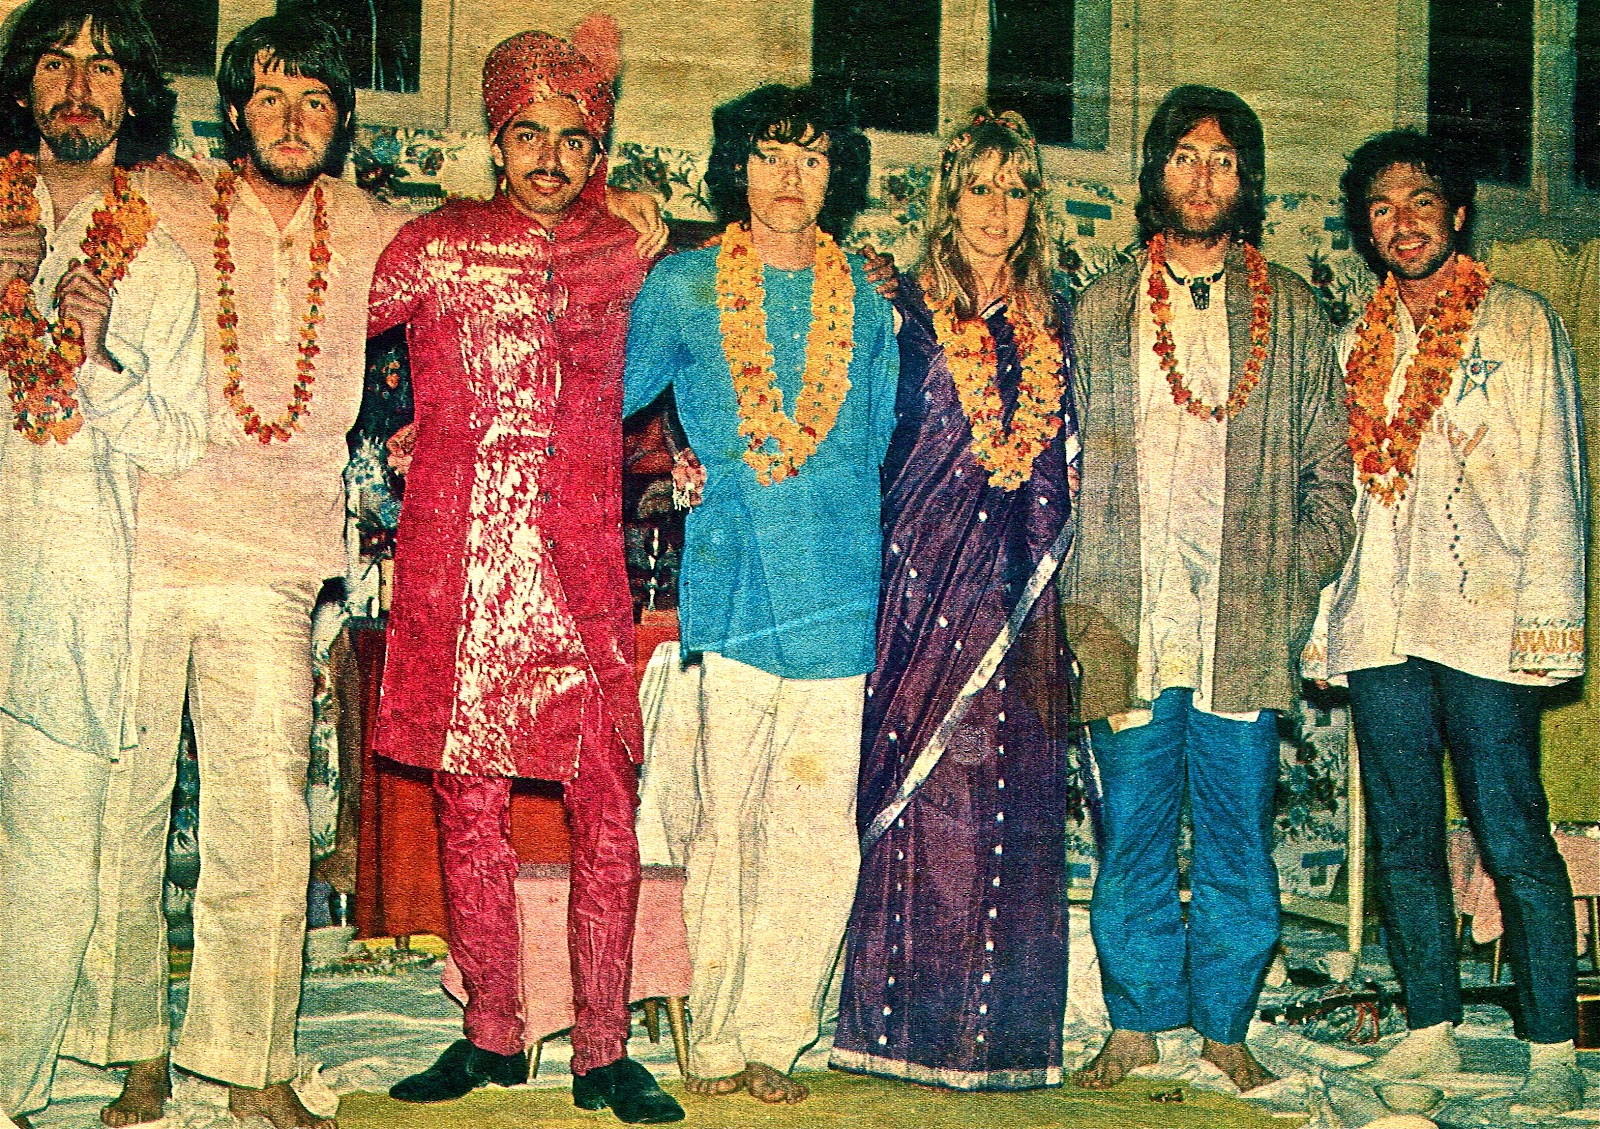 the beatles and indian music and philosophy essay The meaning of the song reflects indian/ hindu philosophy comletely different to the rest of the beatles songs genre- fusion of pop and indian music.